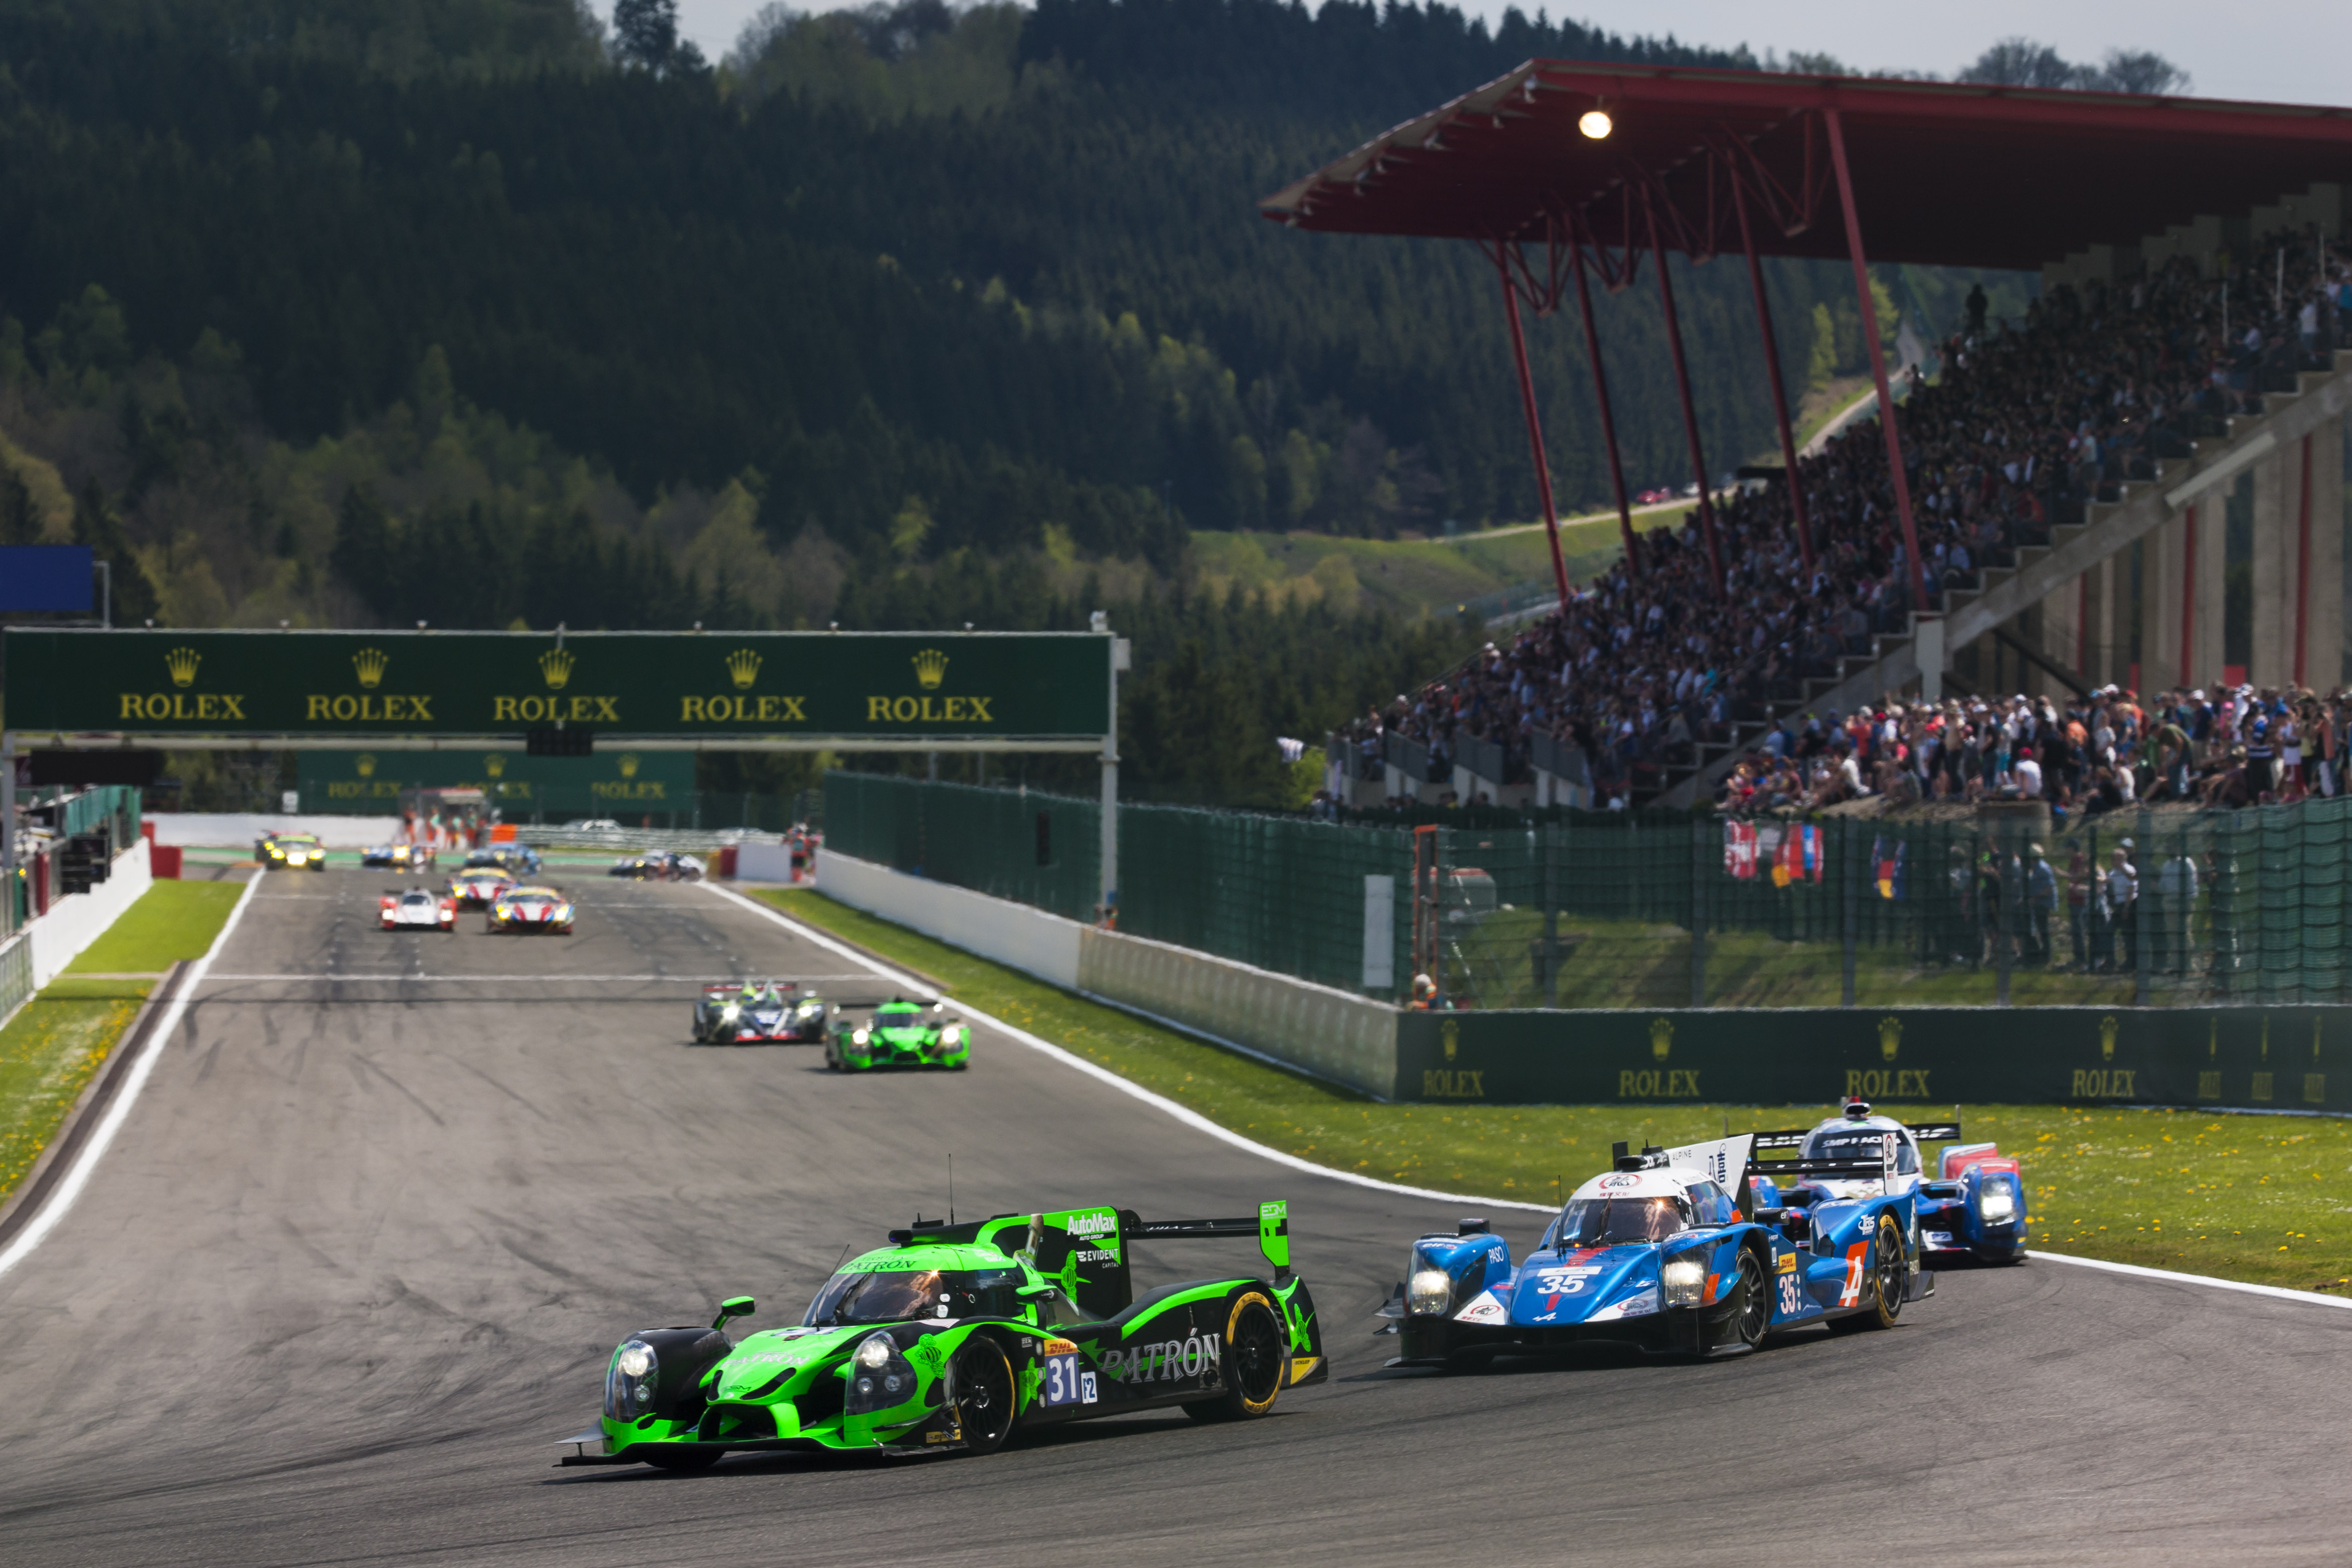 Tequila Patrón ESM Celebrates Podium after Chaotic Spa-Francorchamps